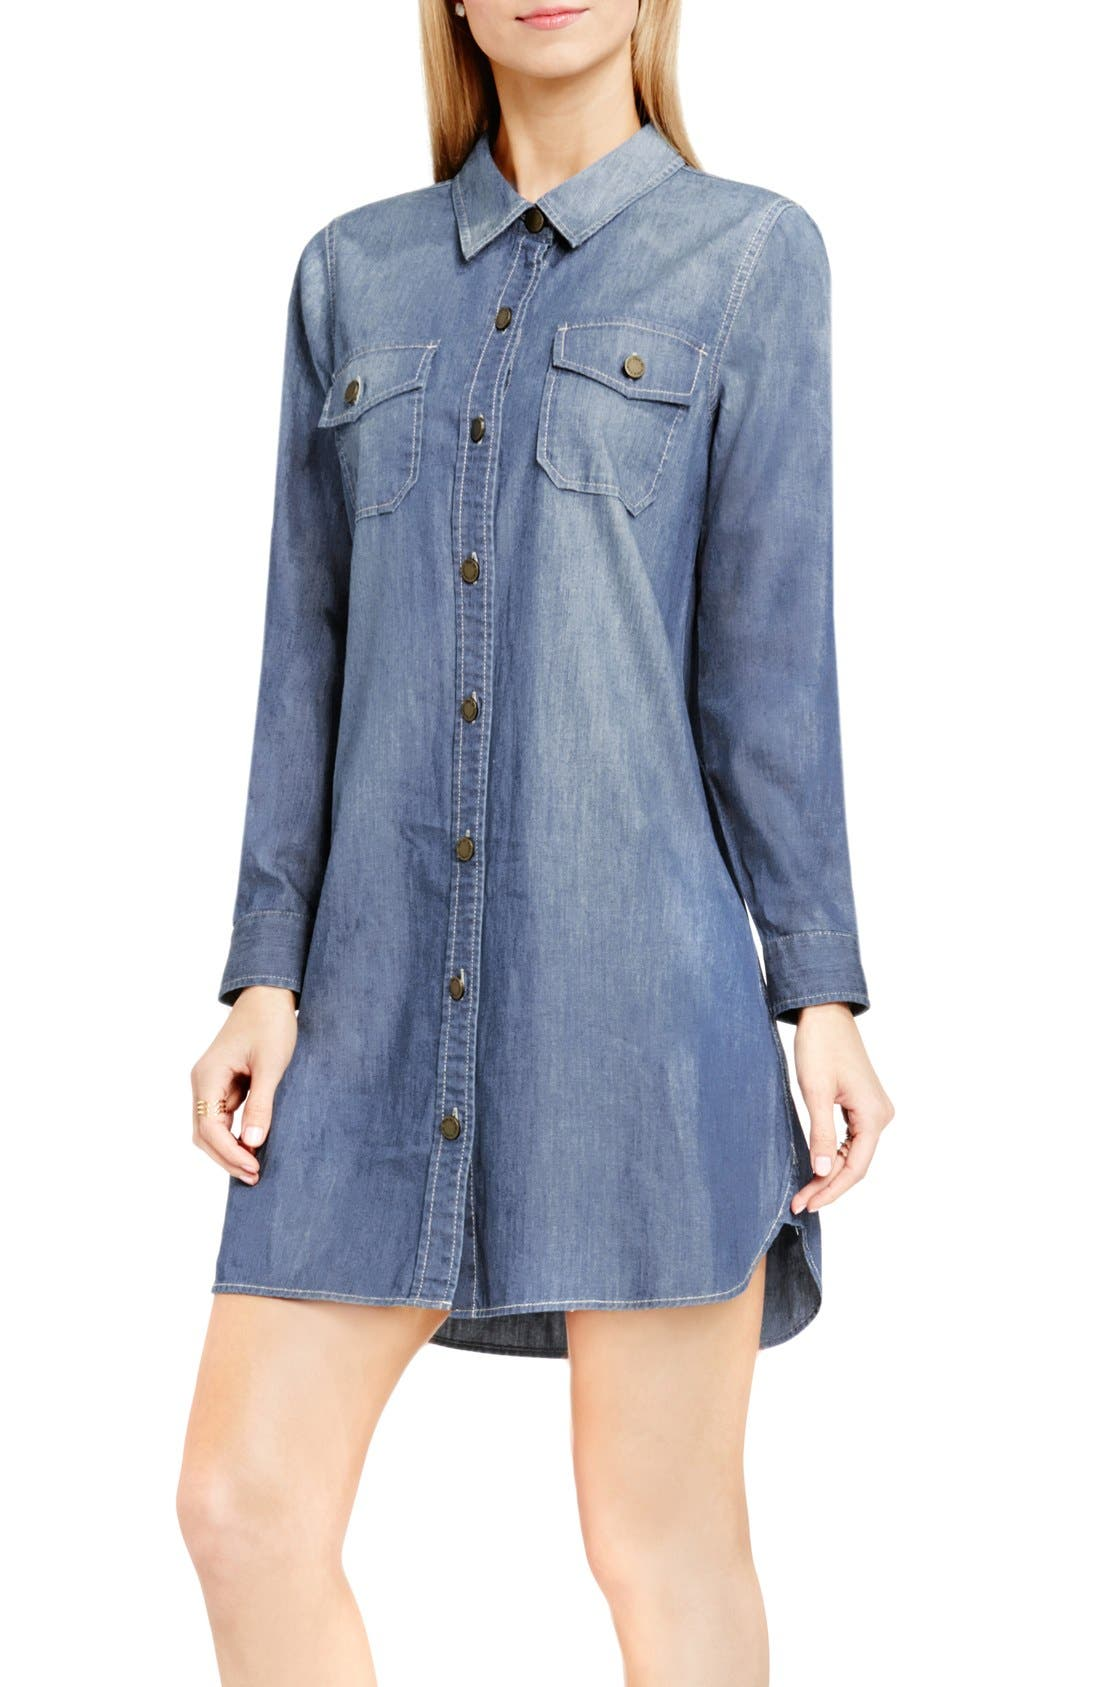 Alternate Image 1 Selected - Two by Vince Camuto Denim Shirtdress